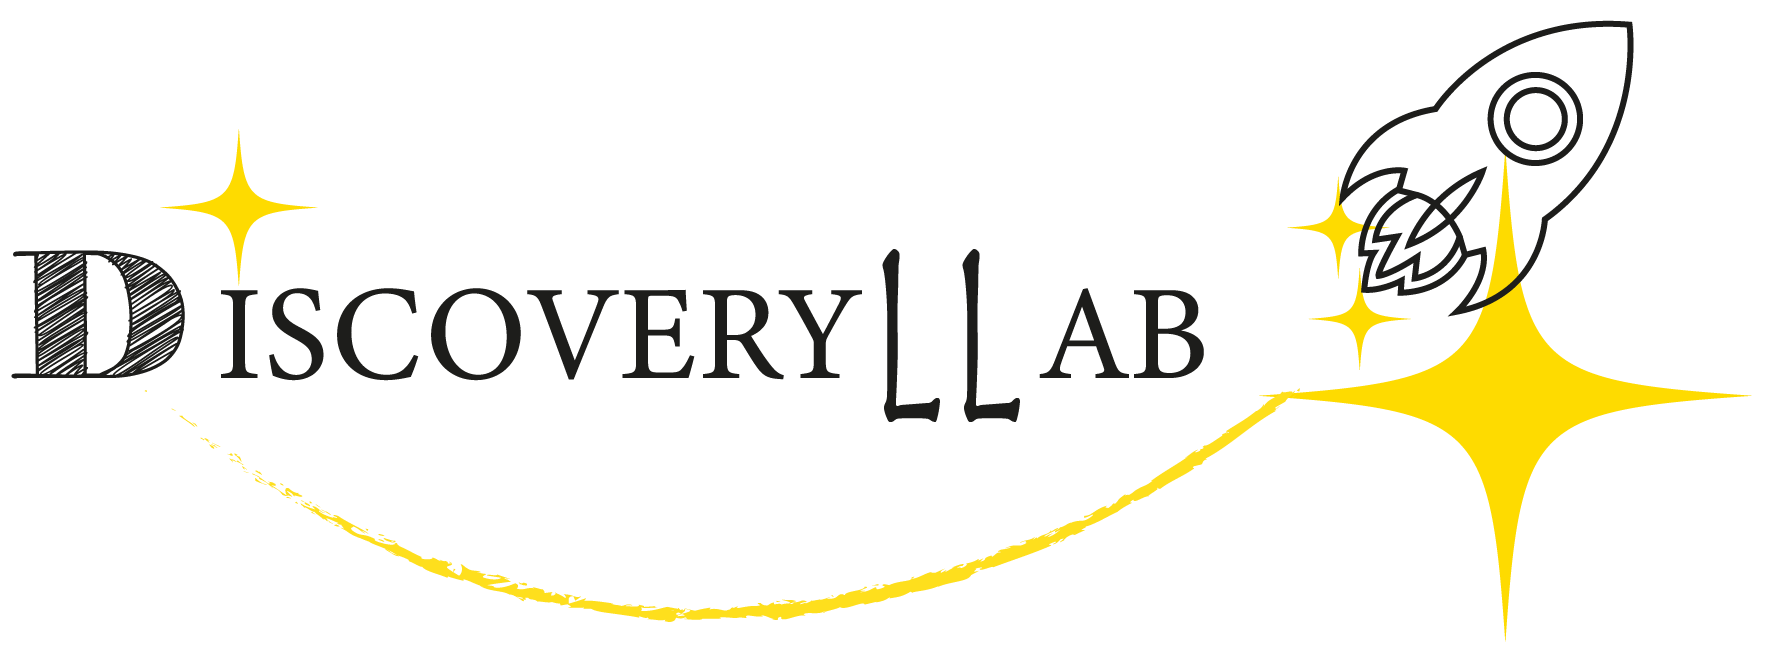 logo-discoveryllab-by-managyle-centre-formation-gaubretiere